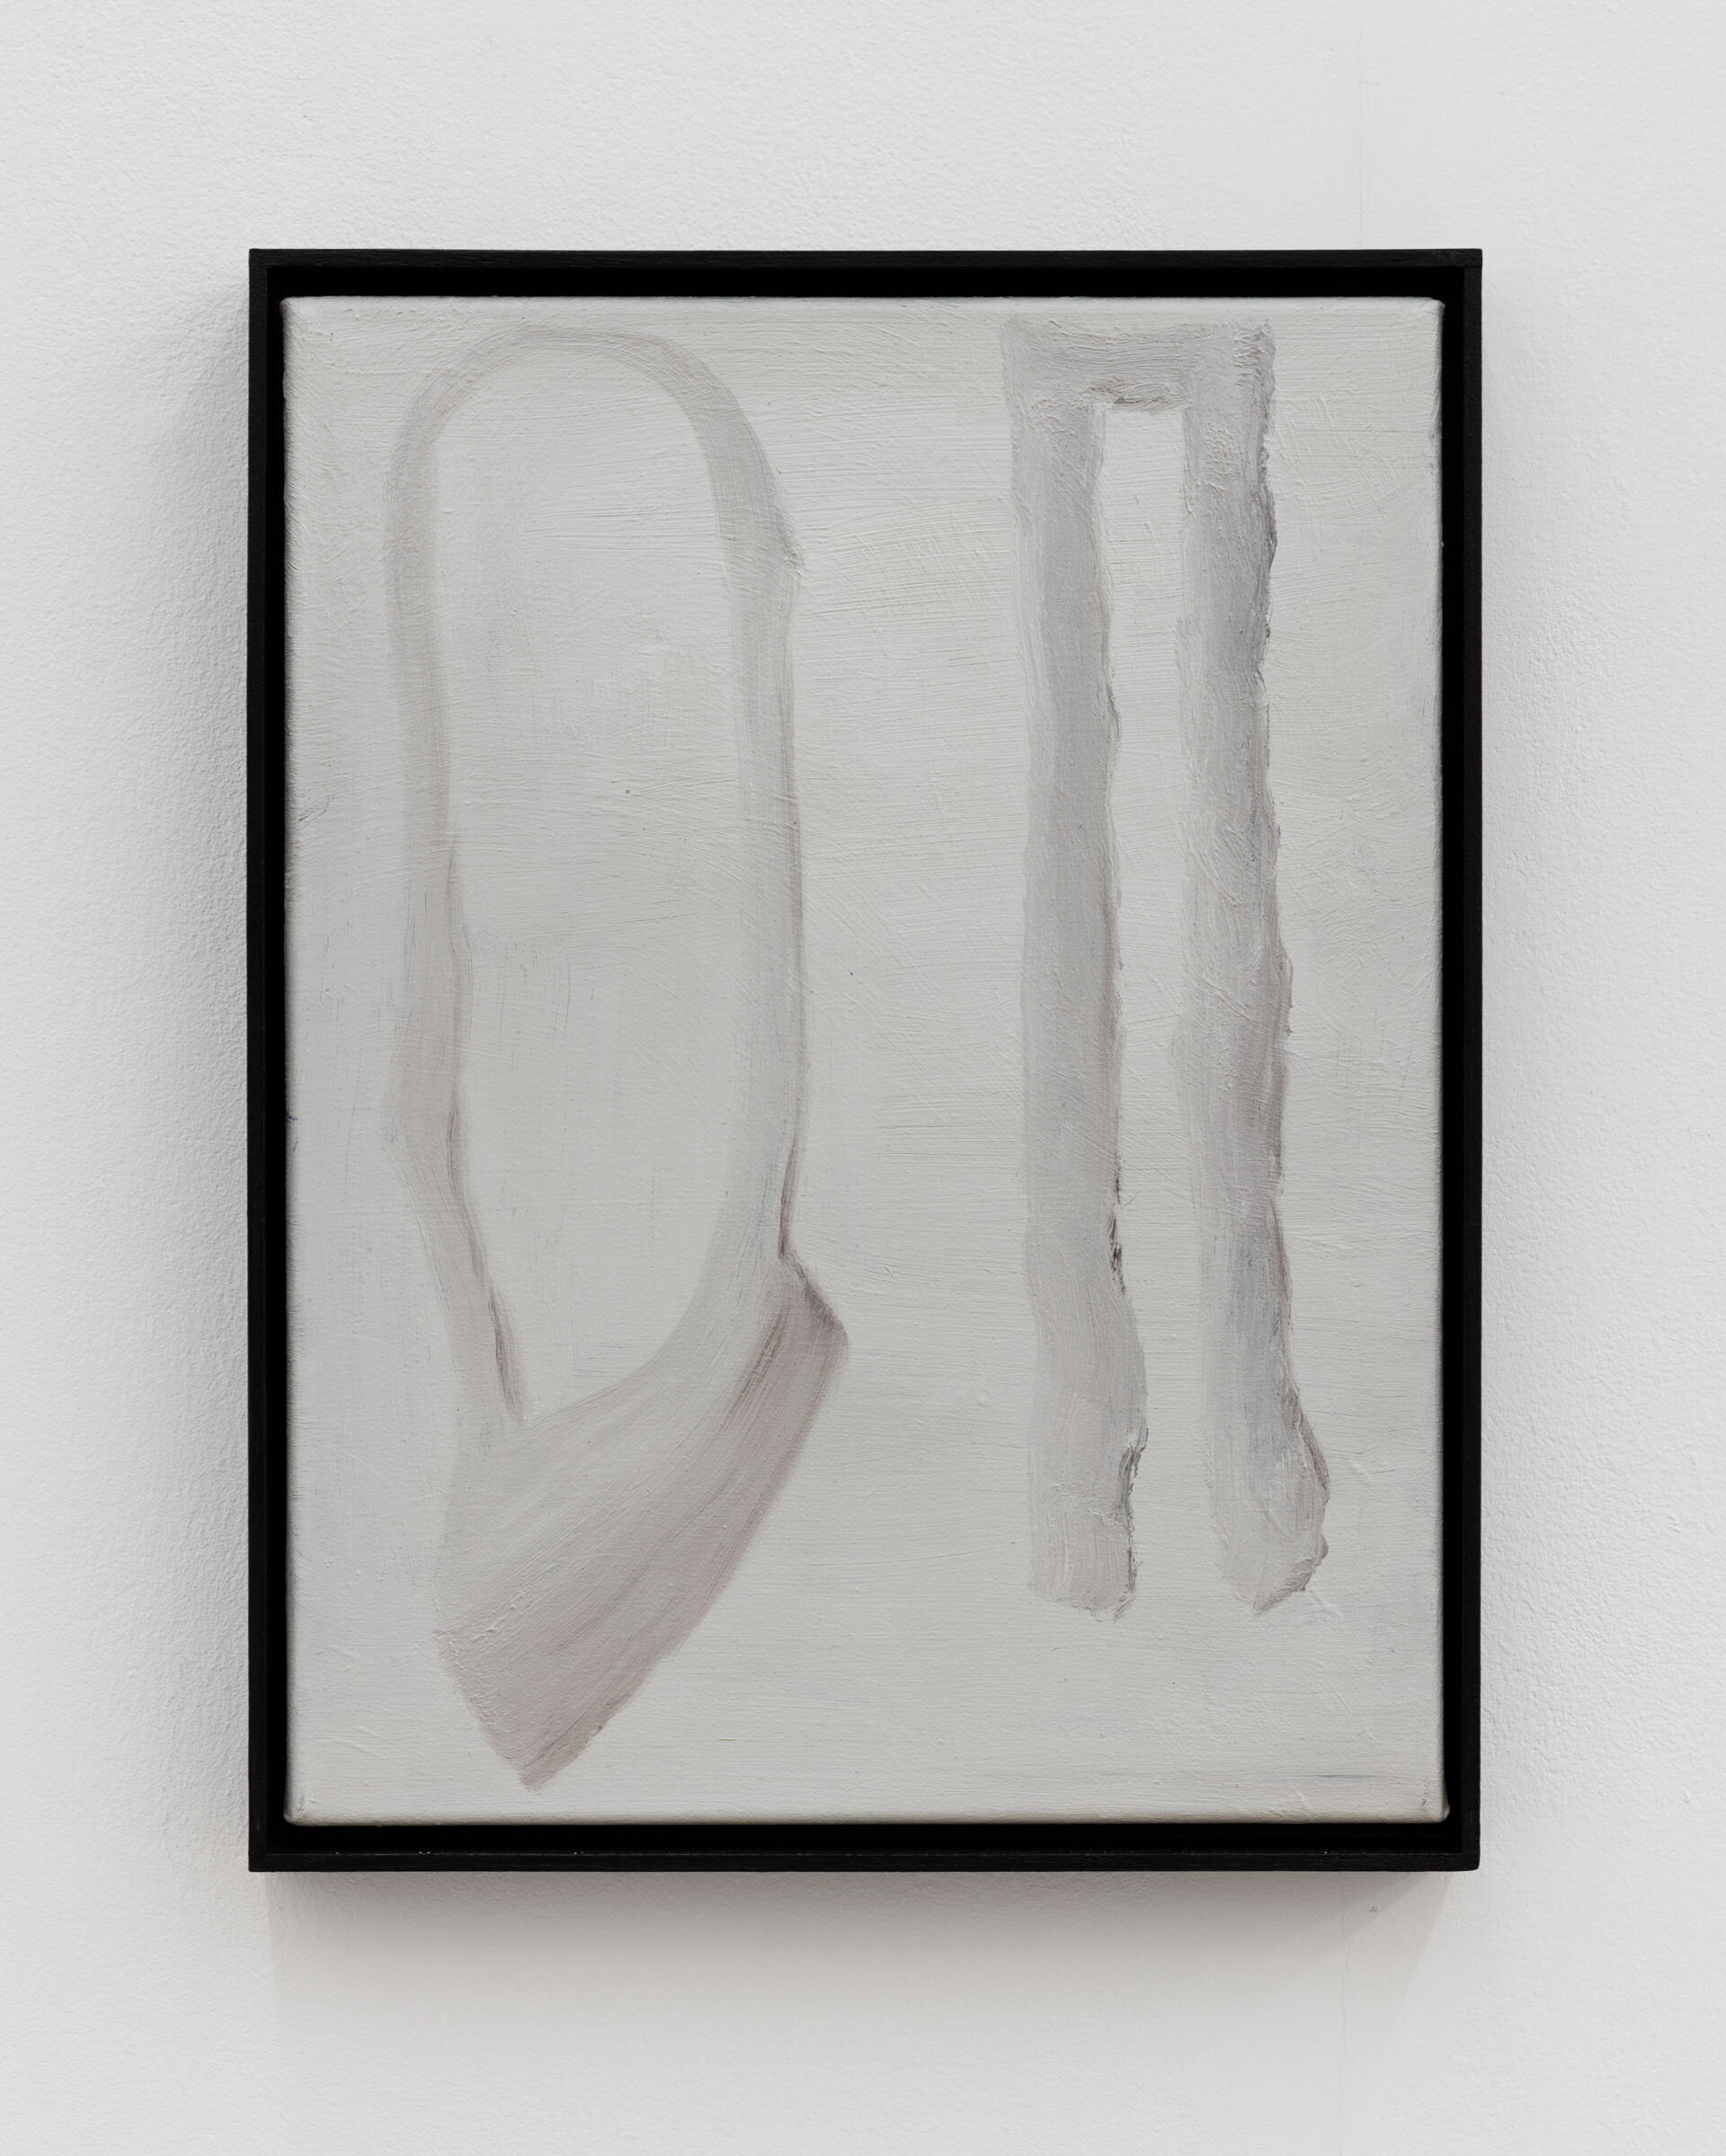 Veronika Hilger, untitled, 2019, oil on canvas in artists frame, 40 x 30 cm